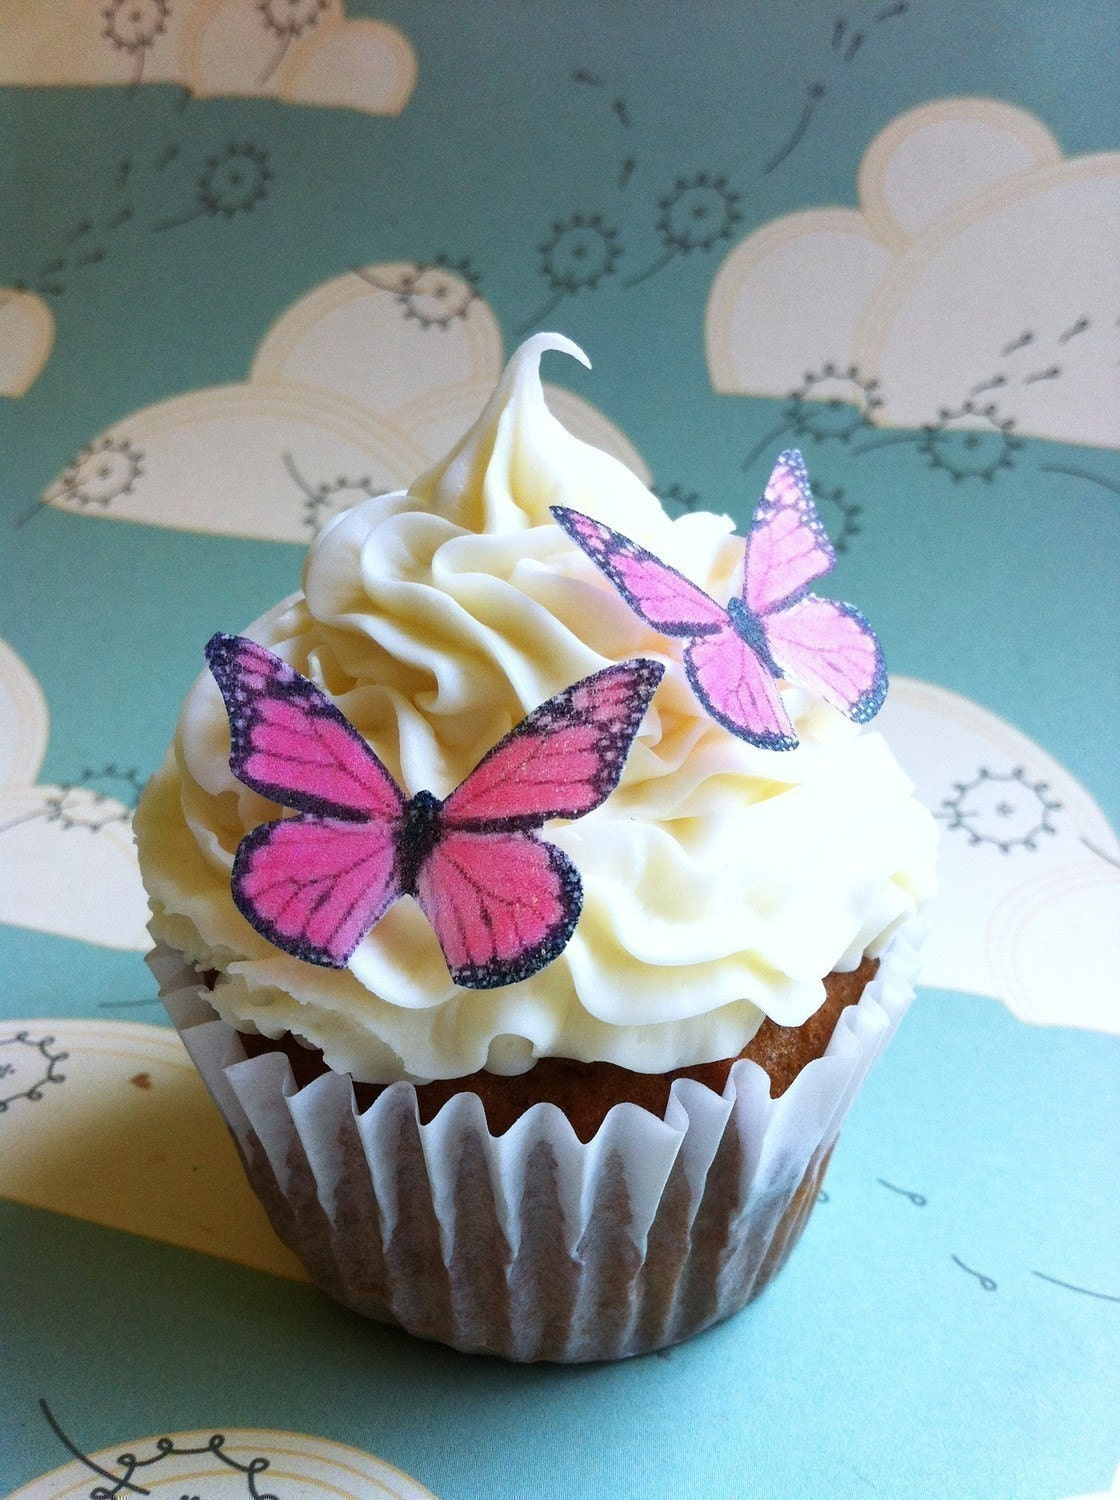 butterfly cake decorations the original edible butterflies small pink monarch 2163